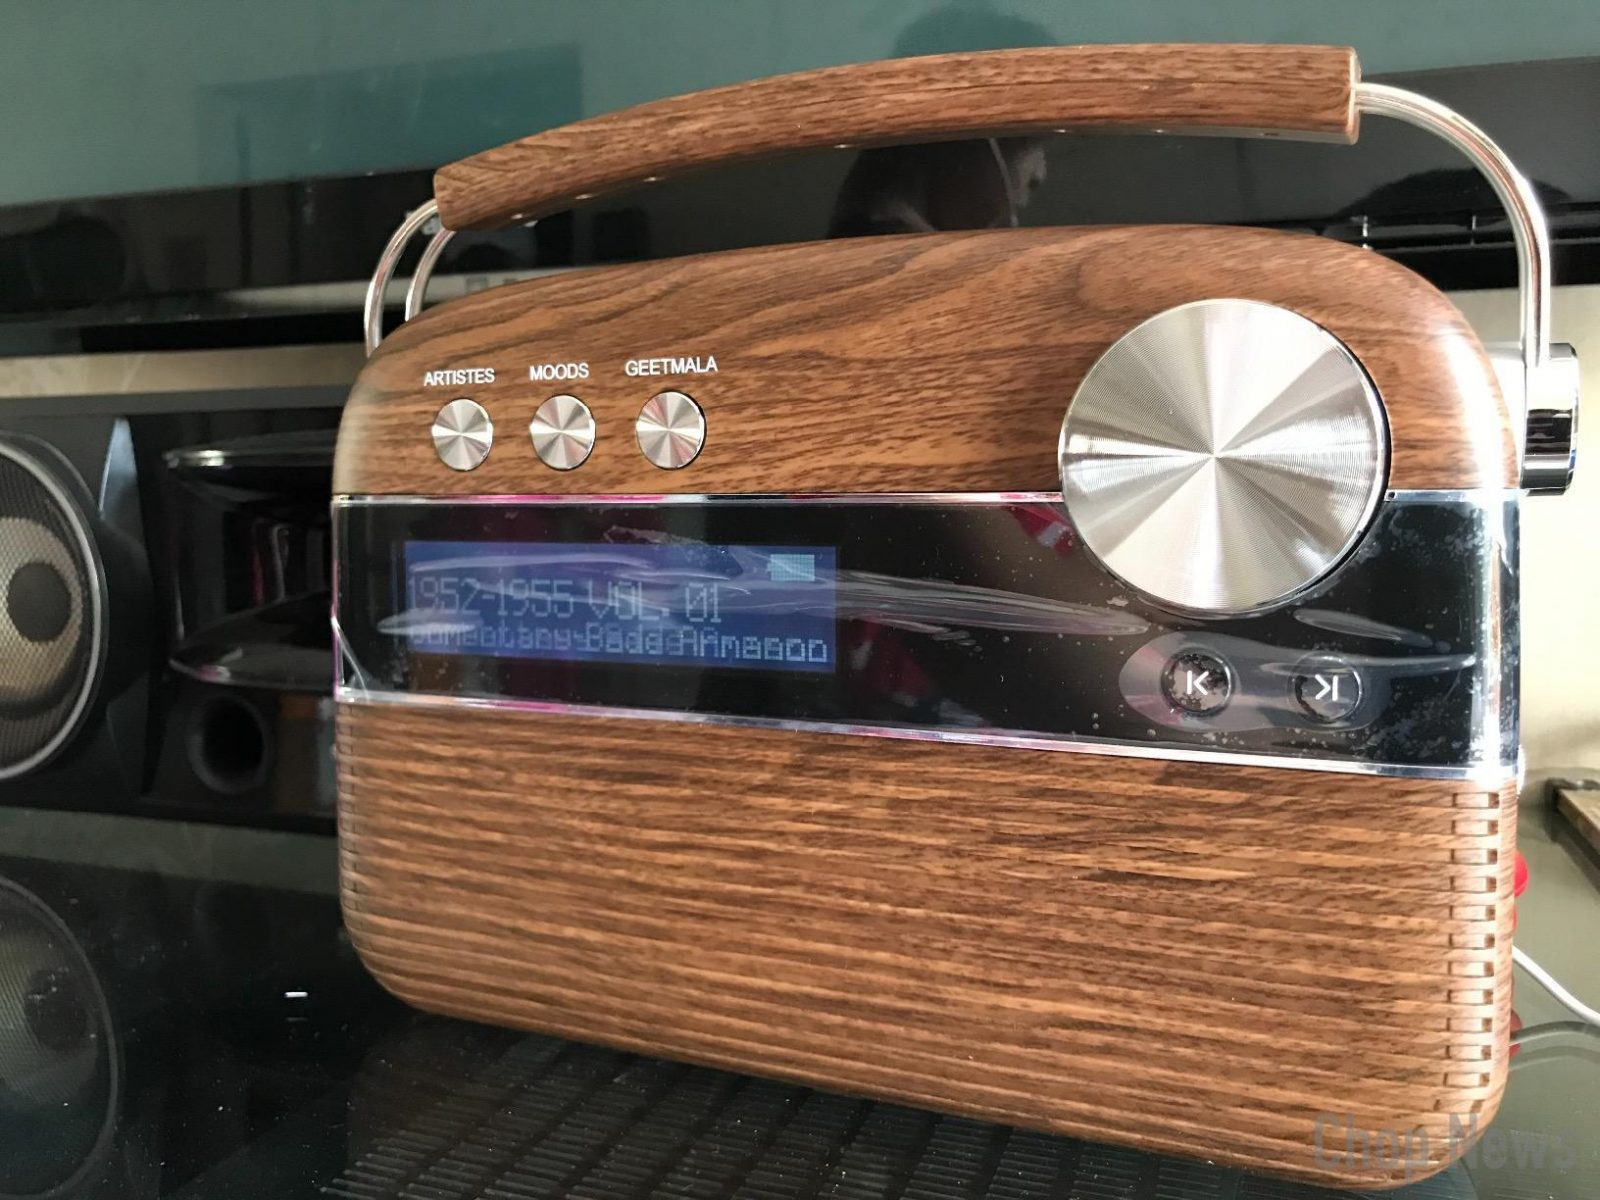 Saregama Carvaan Portable Digital Music Player Review | Chop